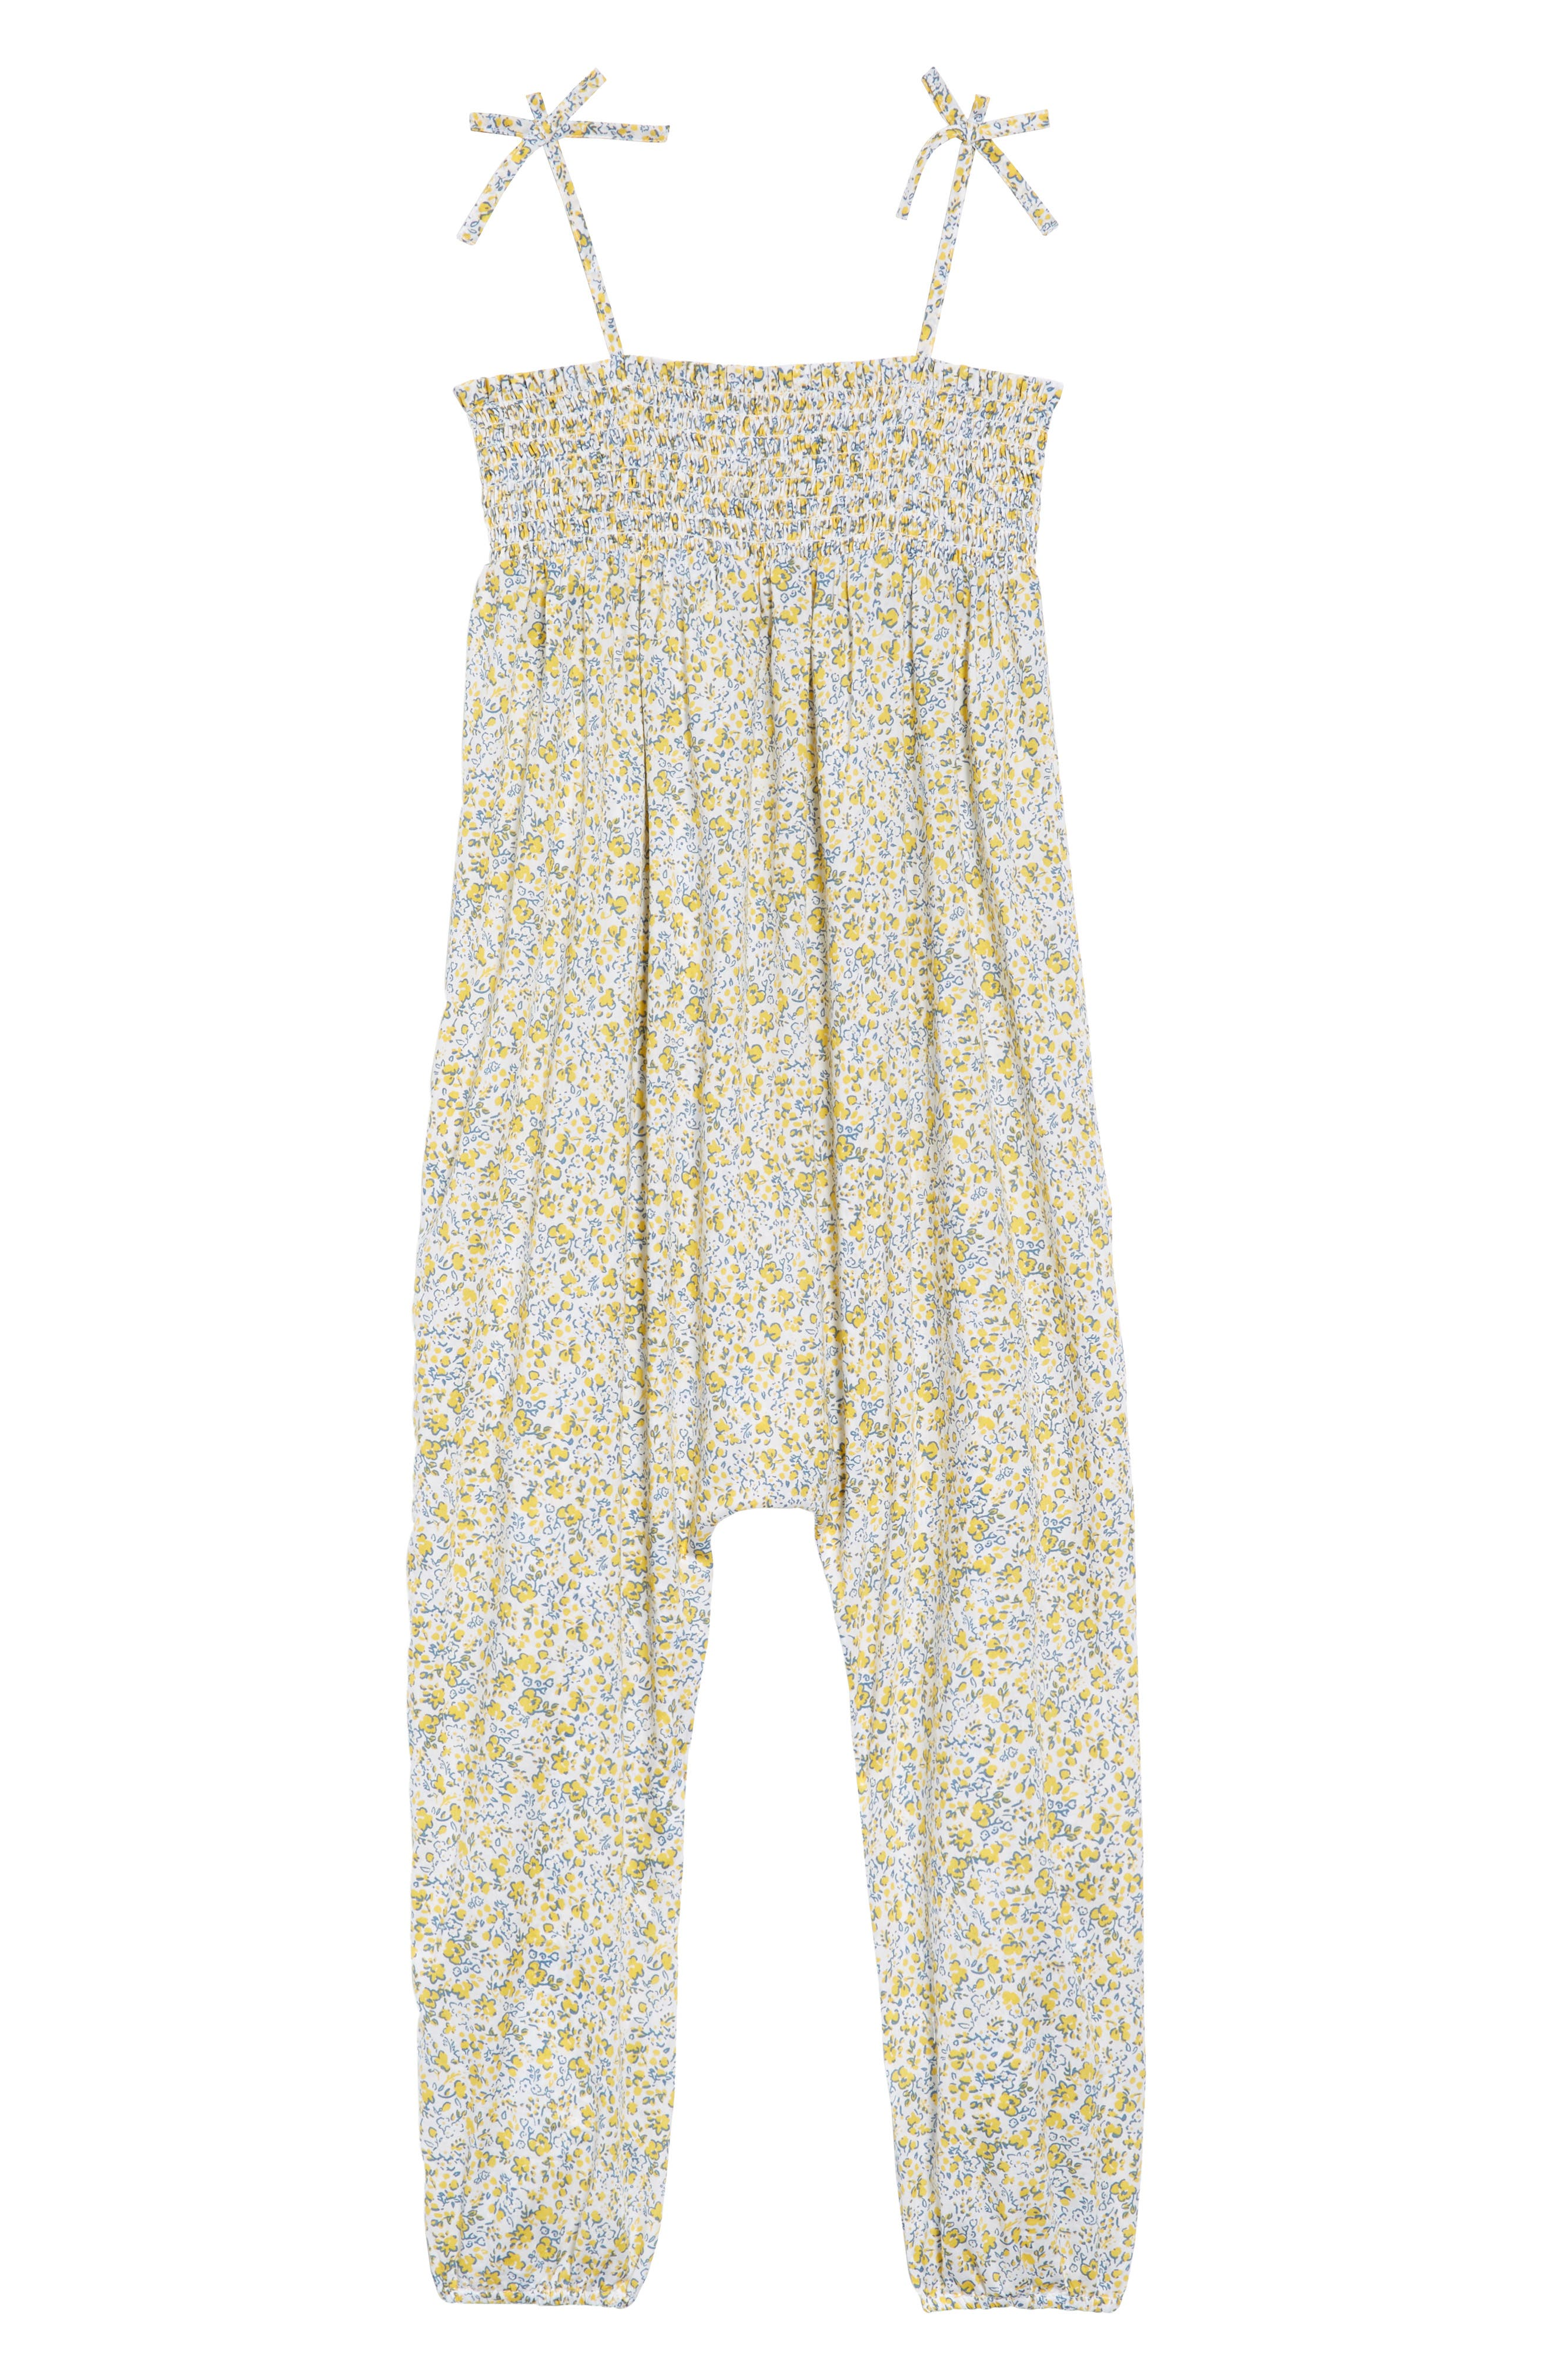 Smocked Ditzy Floral Romper,                             Main thumbnail 1, color,                             White- Yellow Tonal Ditsy